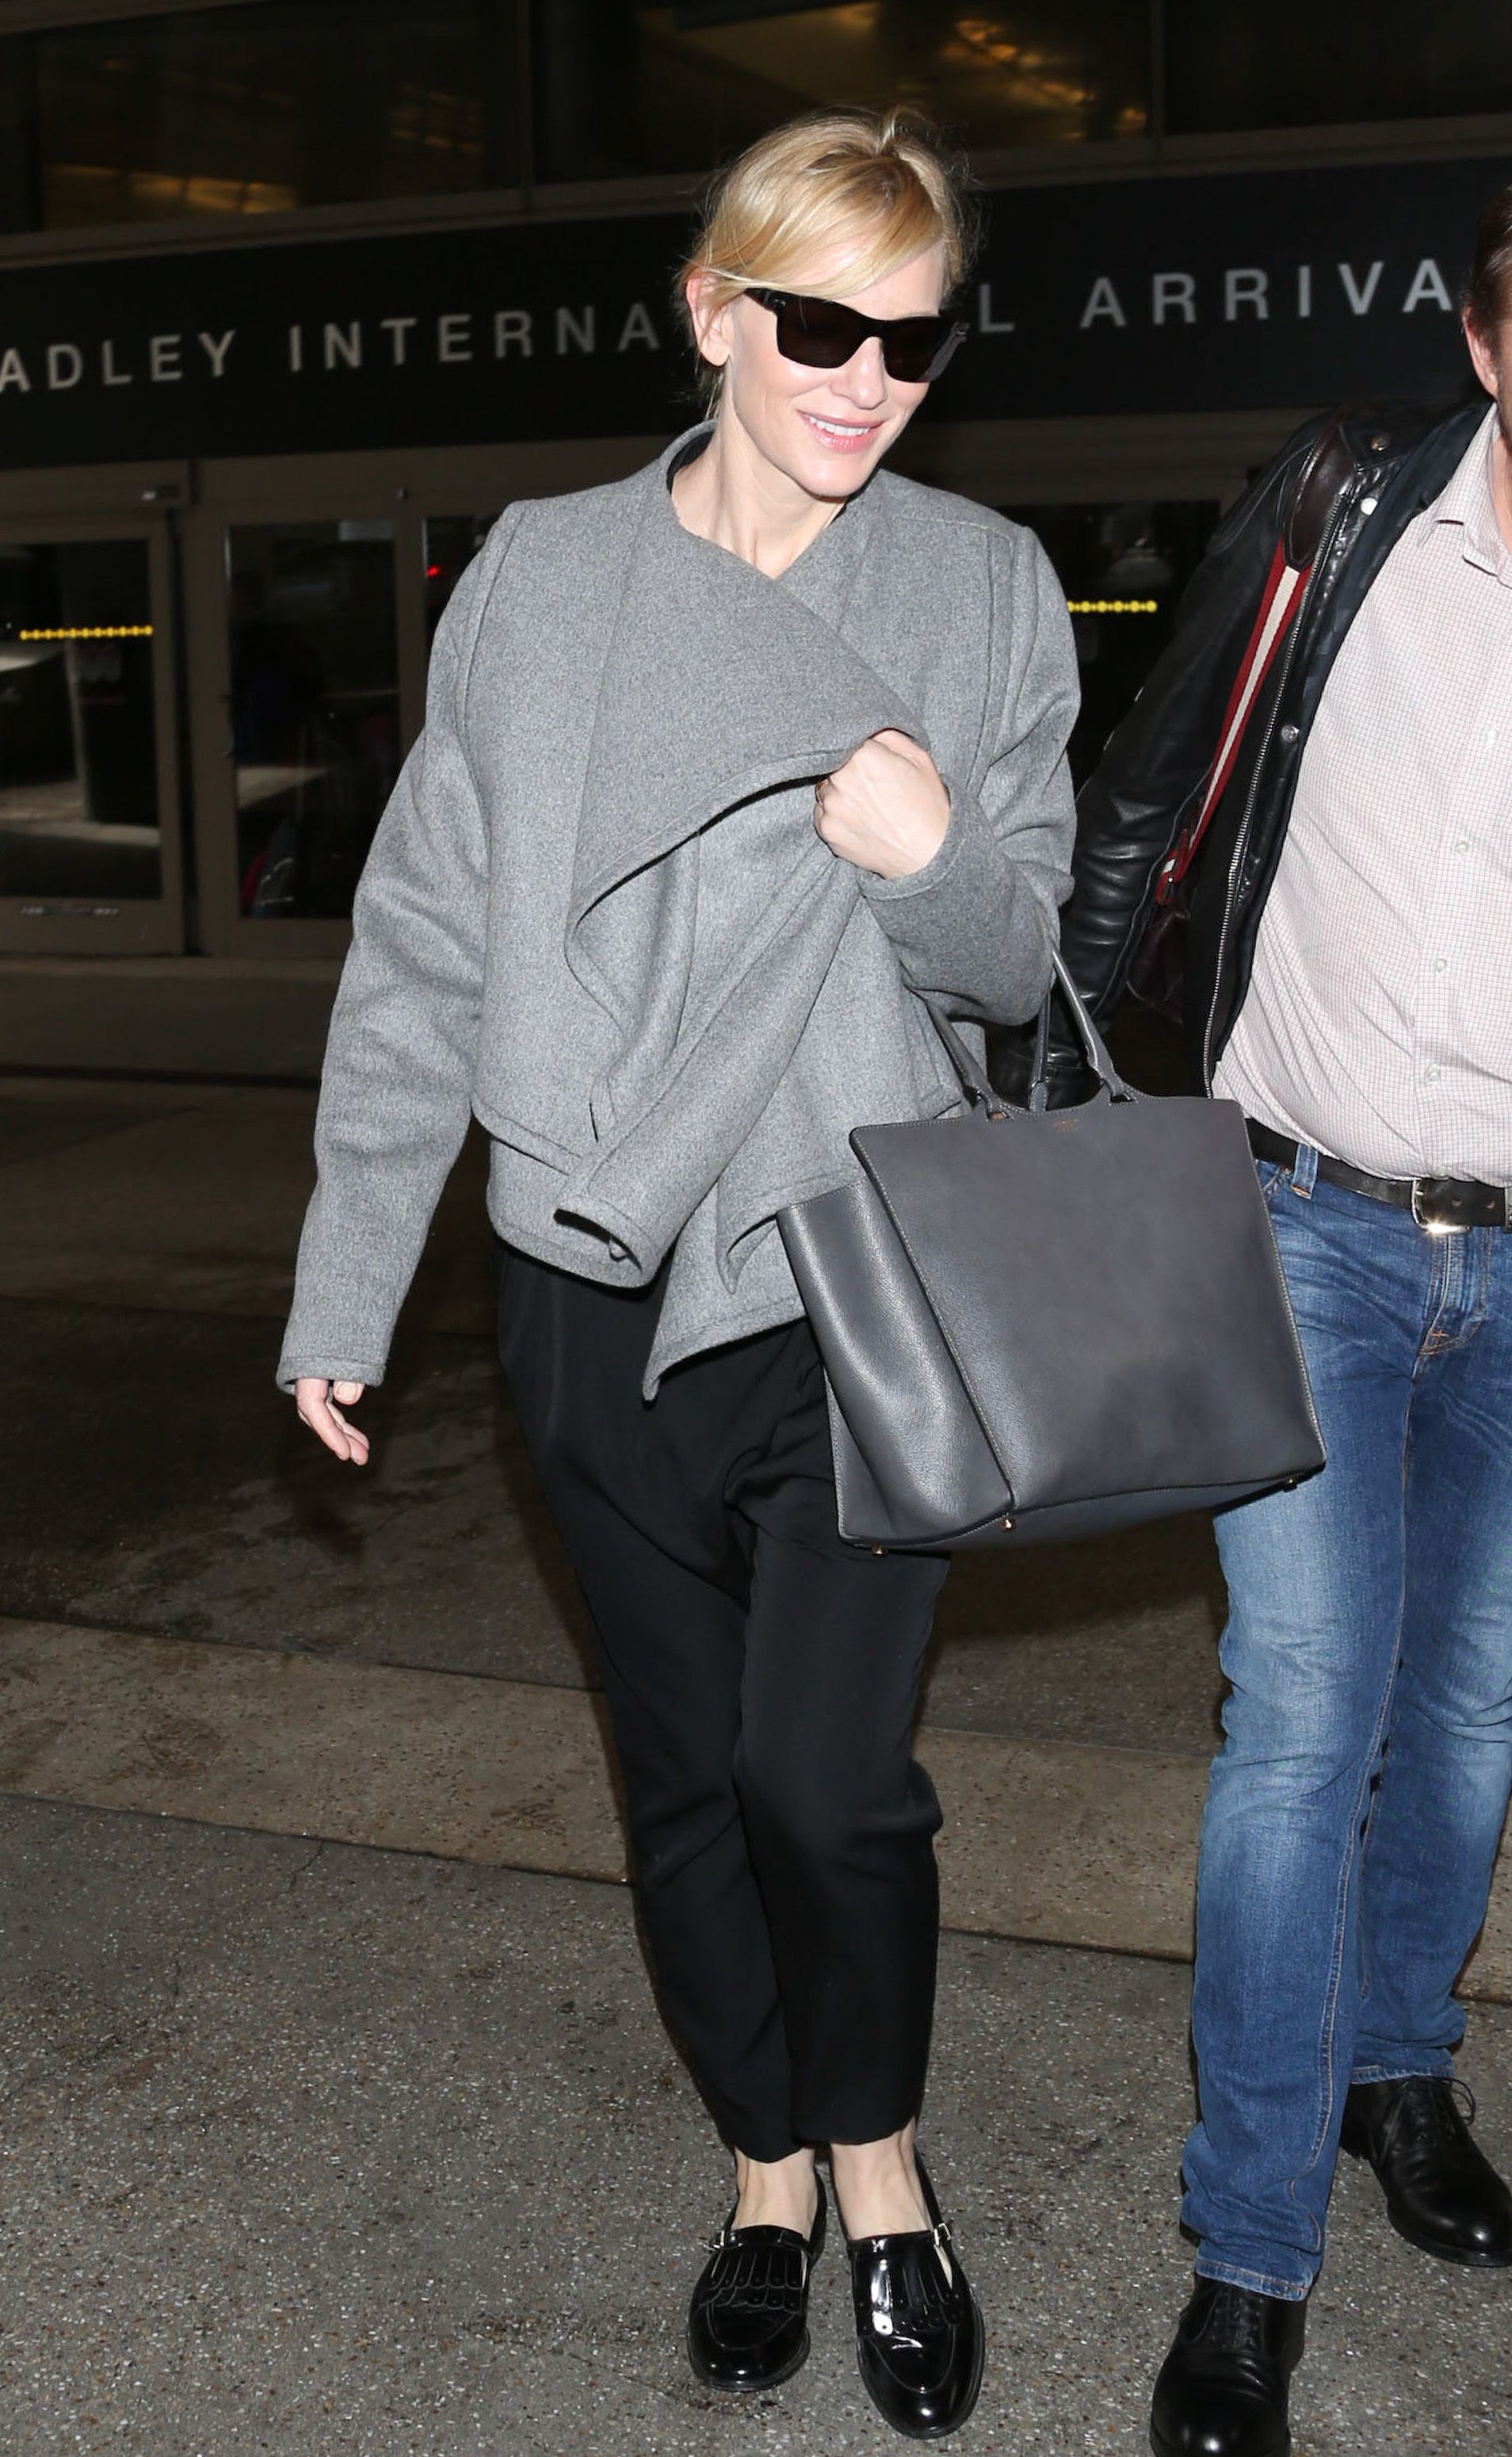 Effortlessly chic: Cate Blanchett completed her travel look with a matching grey oversized Giorgio #Armani handbag